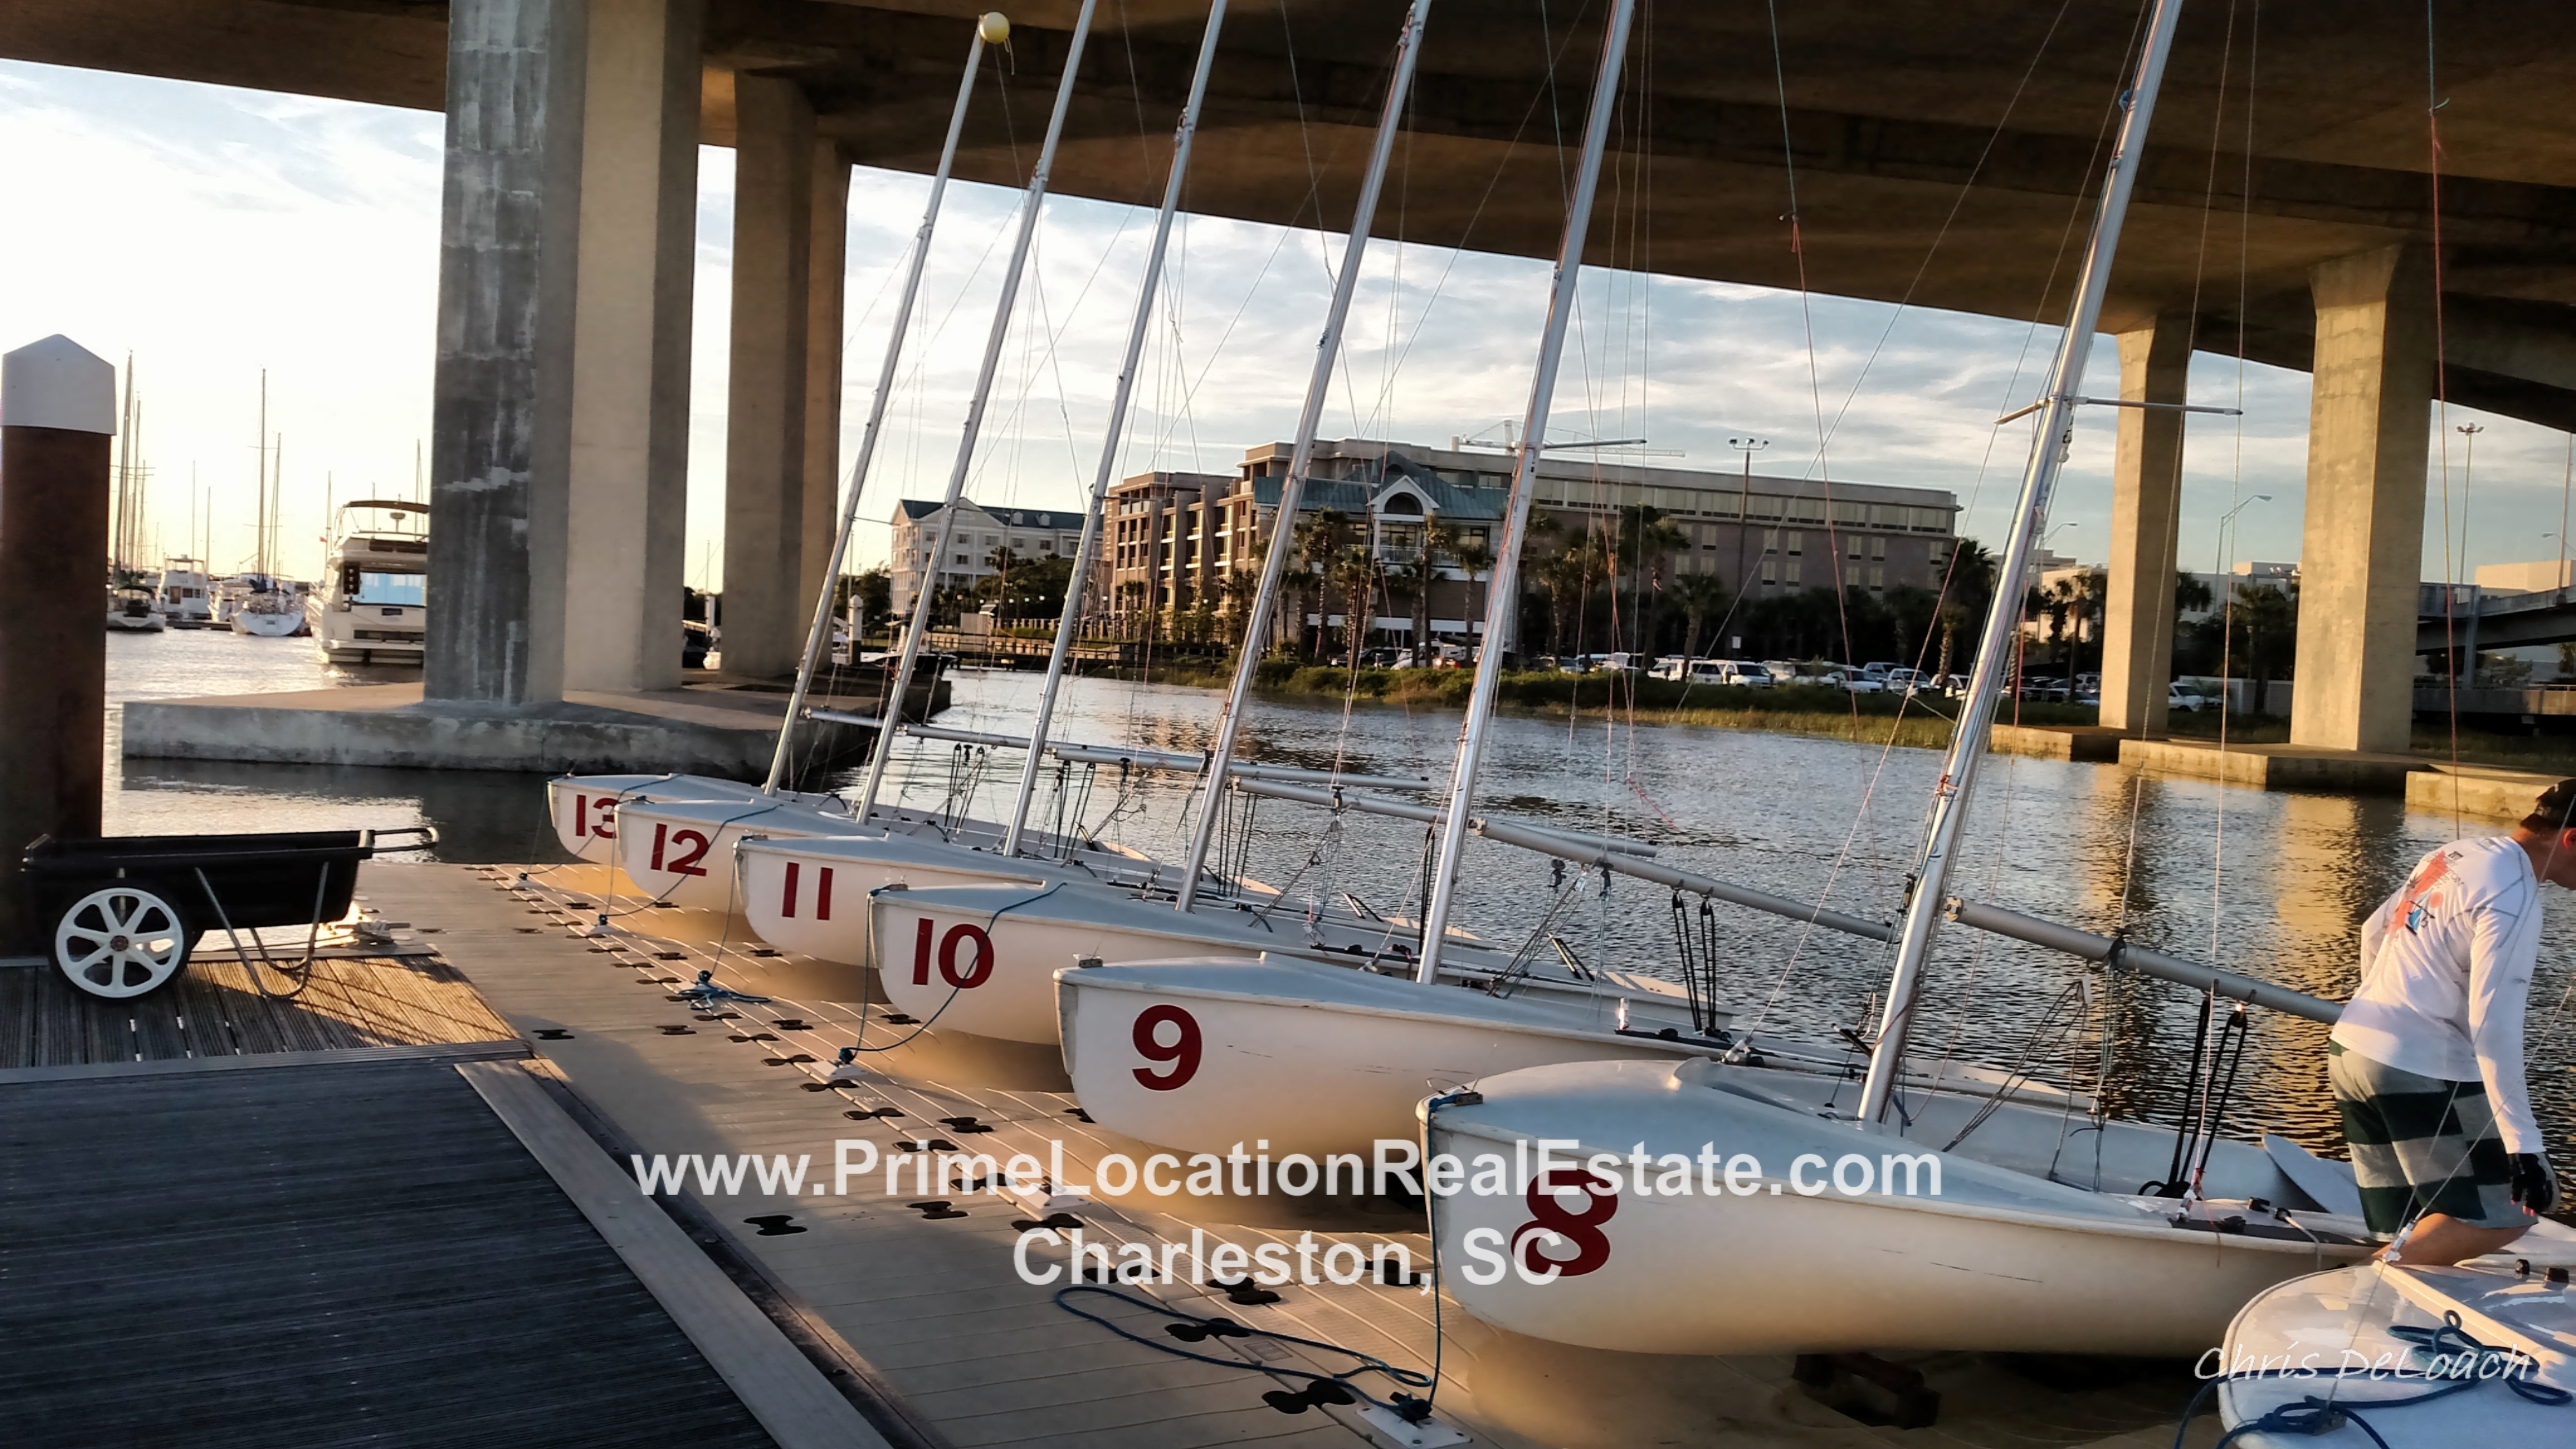 Charleston City Marina - Charleston Community Sailing 2